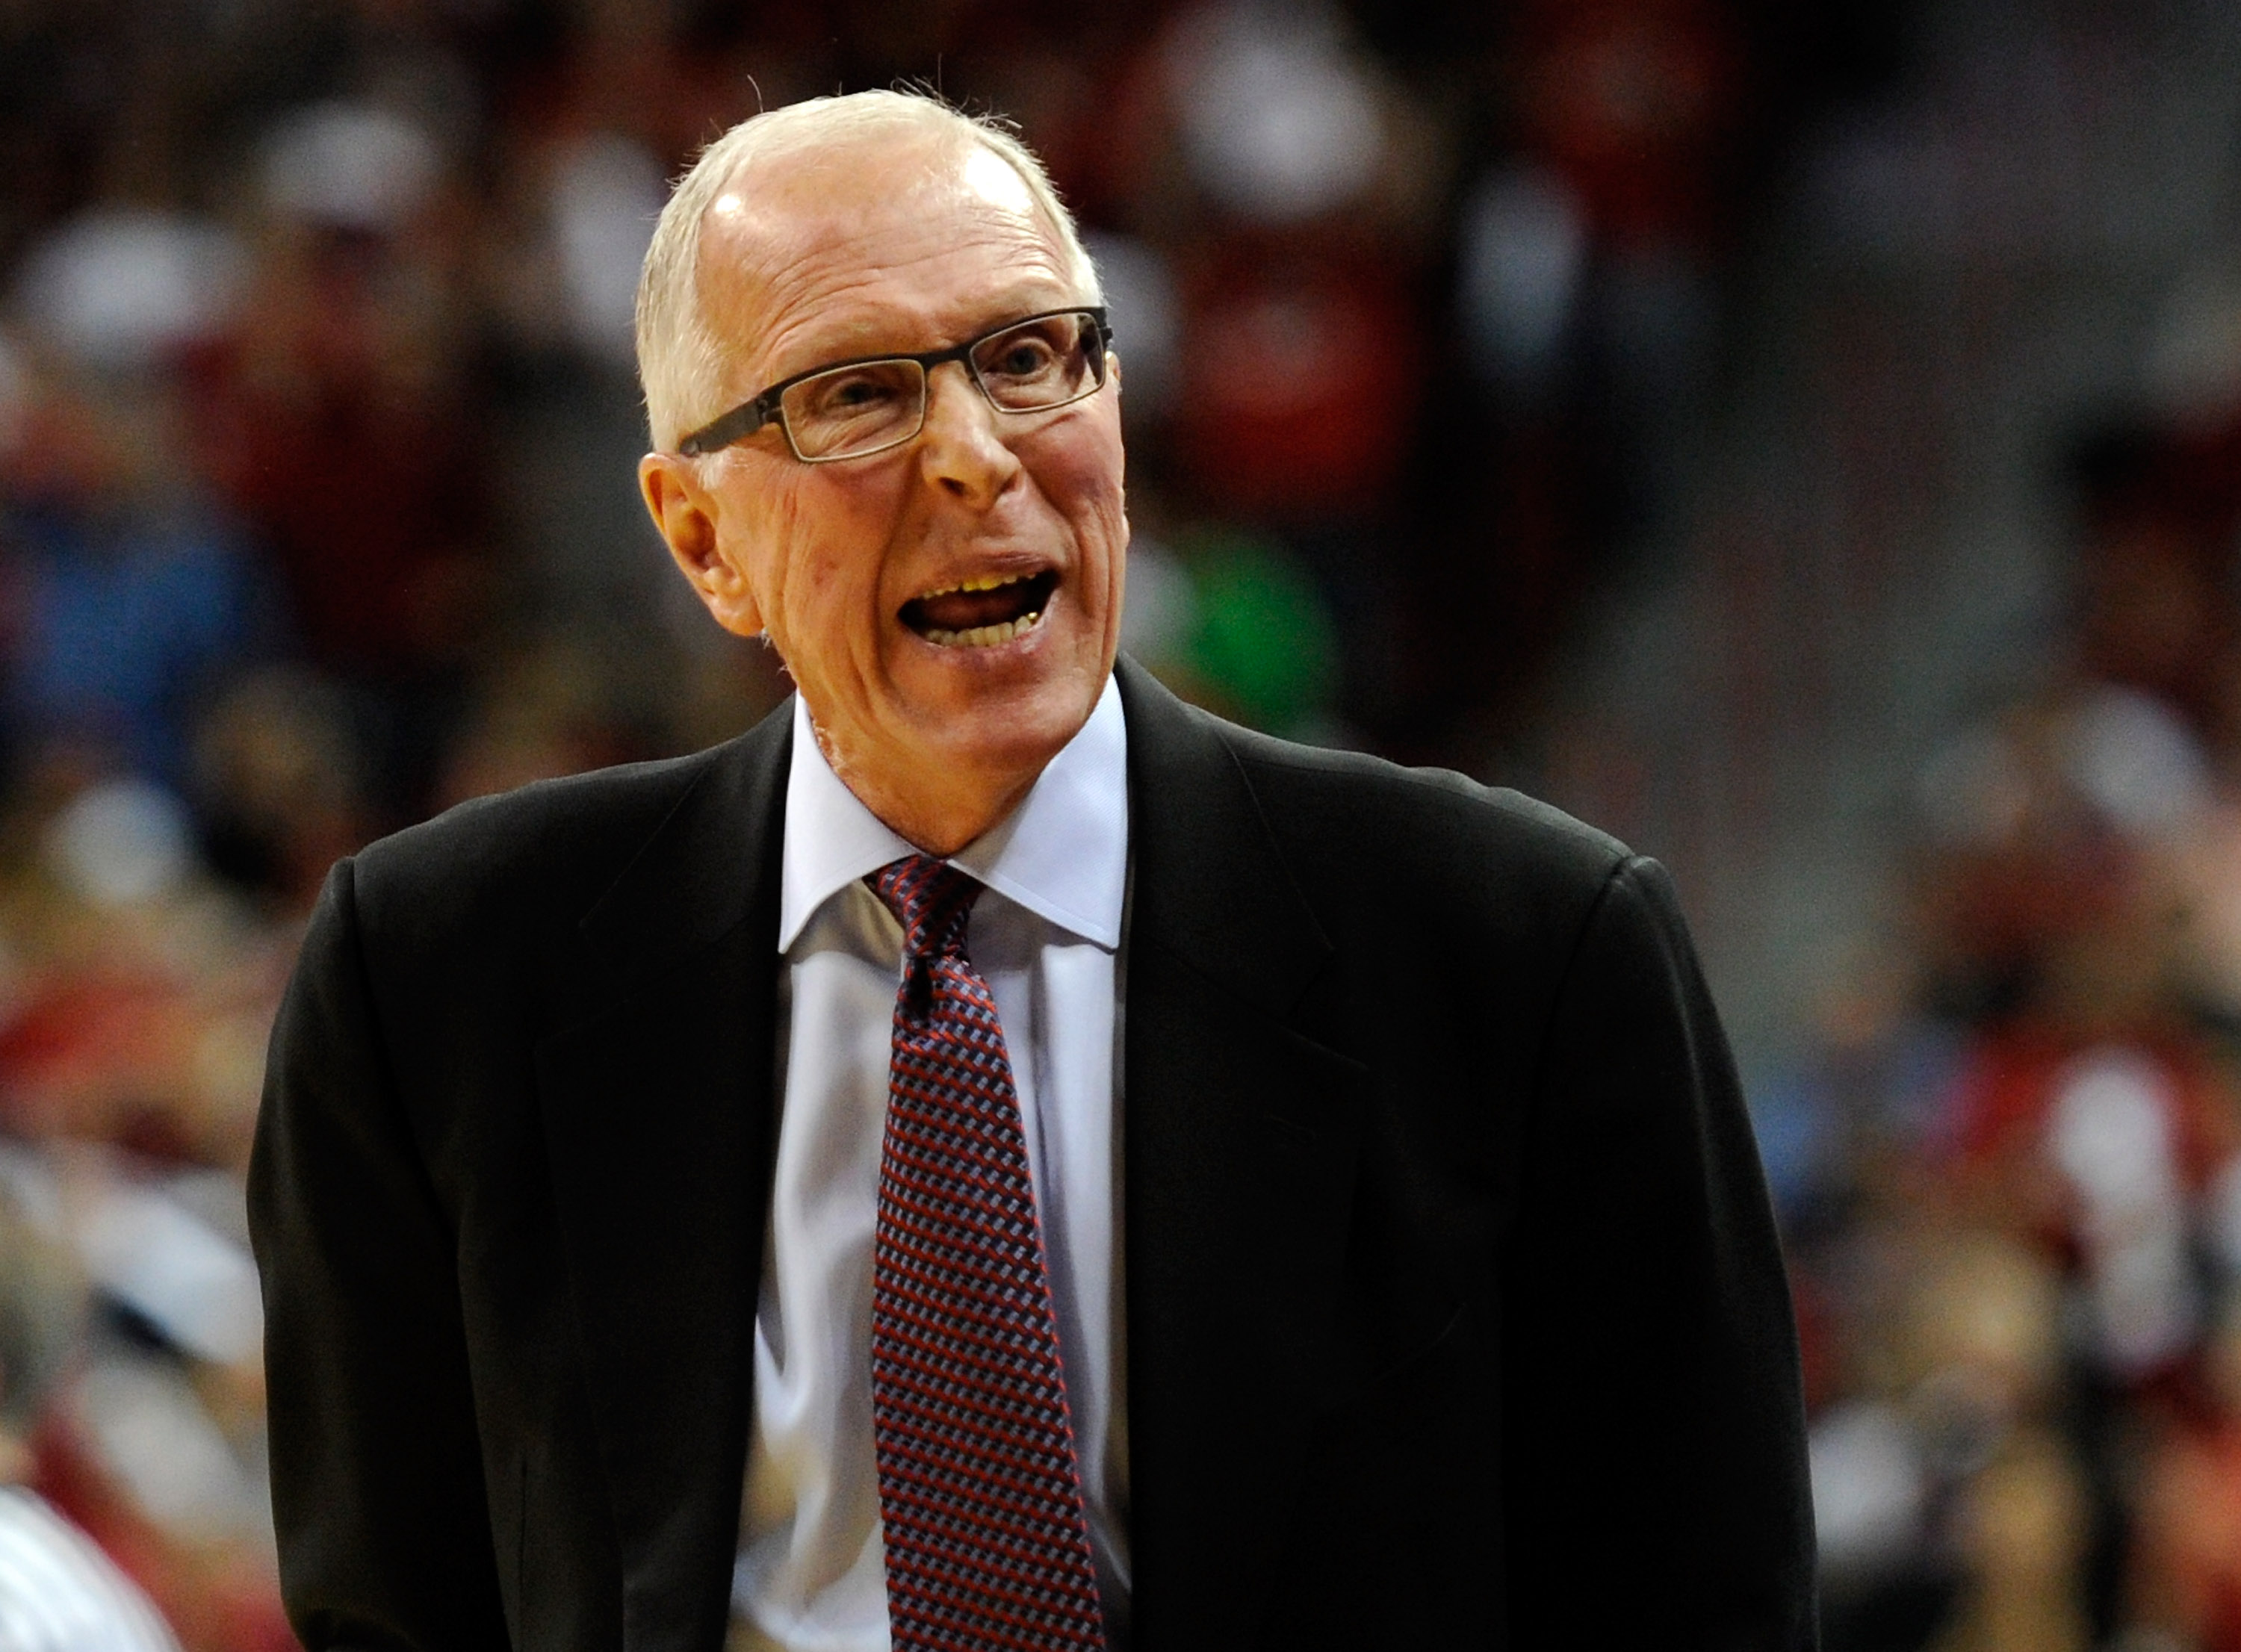 LAS VEGAS, NV - FEBRUARY 12:  Head coach Steve Fisher of the San Diego State Aztecs yells at his bench during the team's game against the UNLV Rebels at the Thomas & Mack Center February 12, 2011 in Las Vegas, Nevada. San Diego State won 63-57.  (Photo by